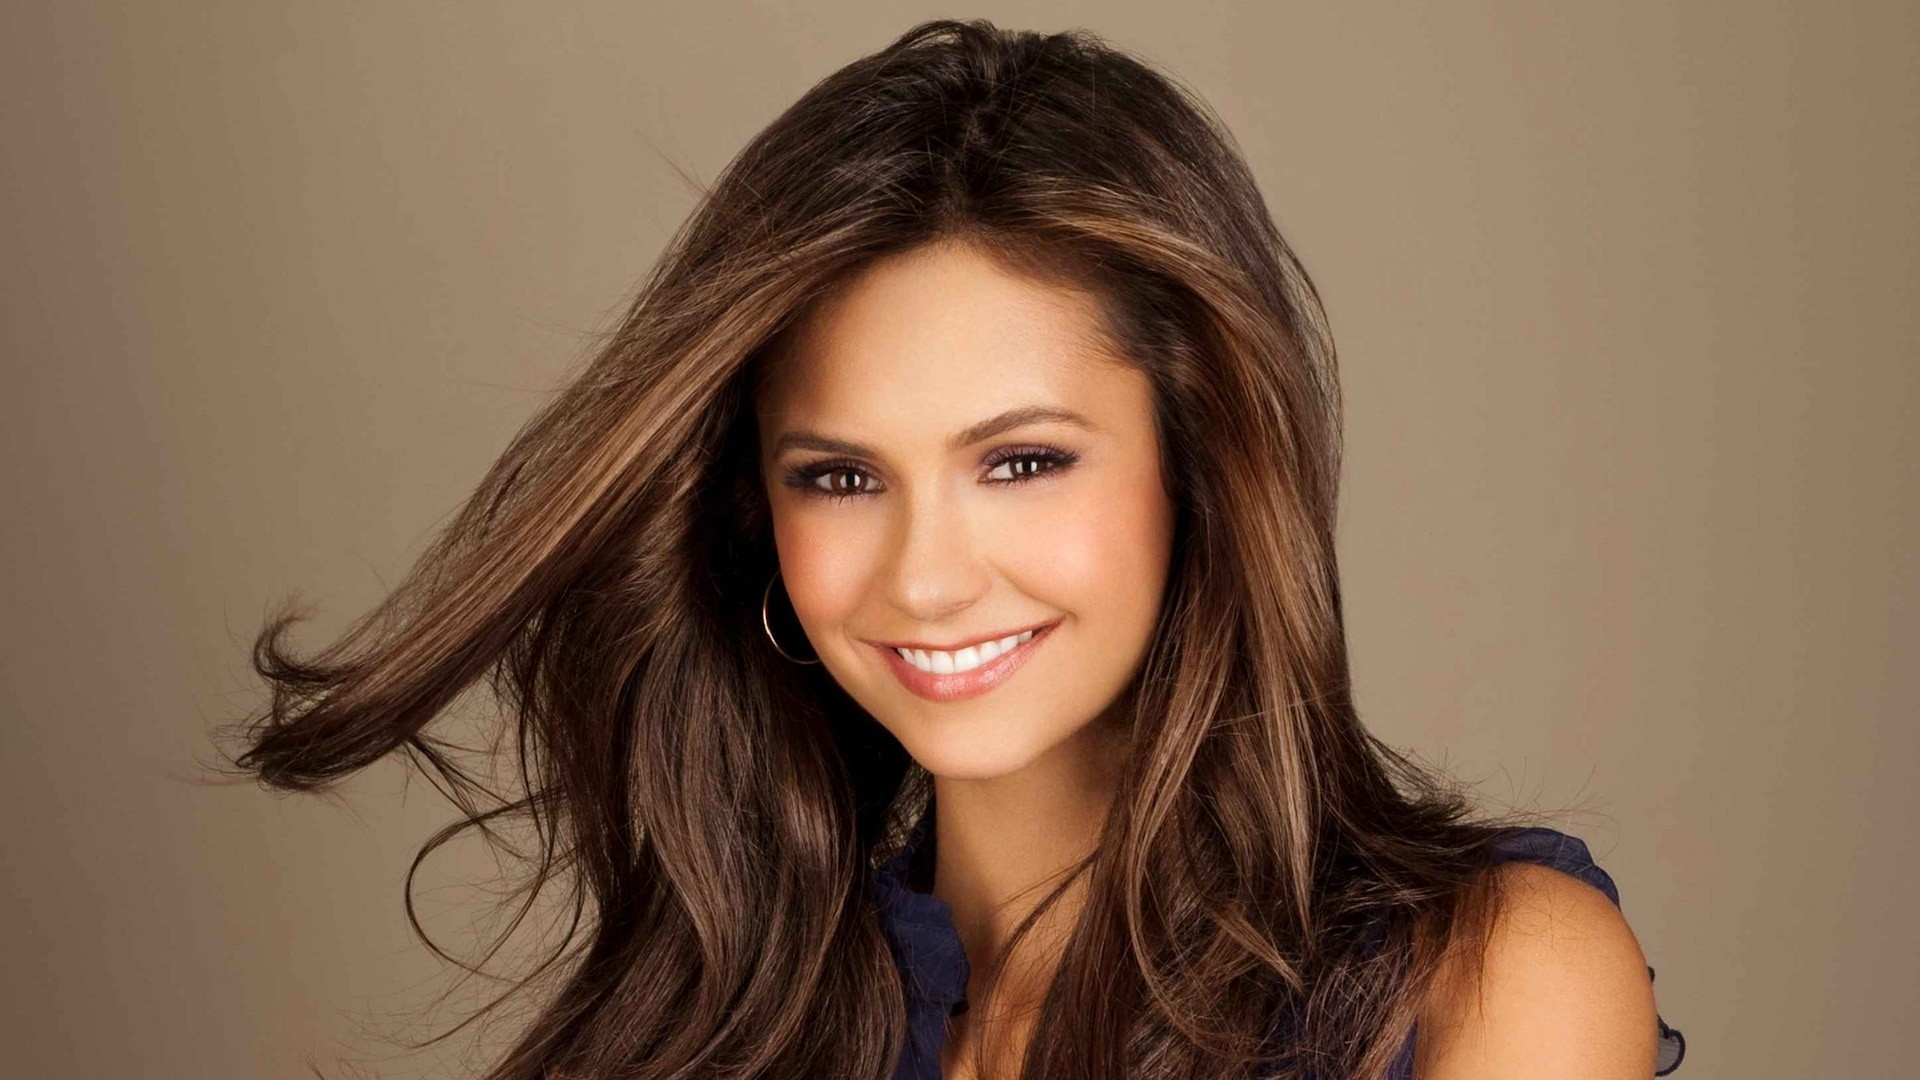 Nina Dobrev earned a unknown million dollar salary, leaving the net worth at 6 million in 2017